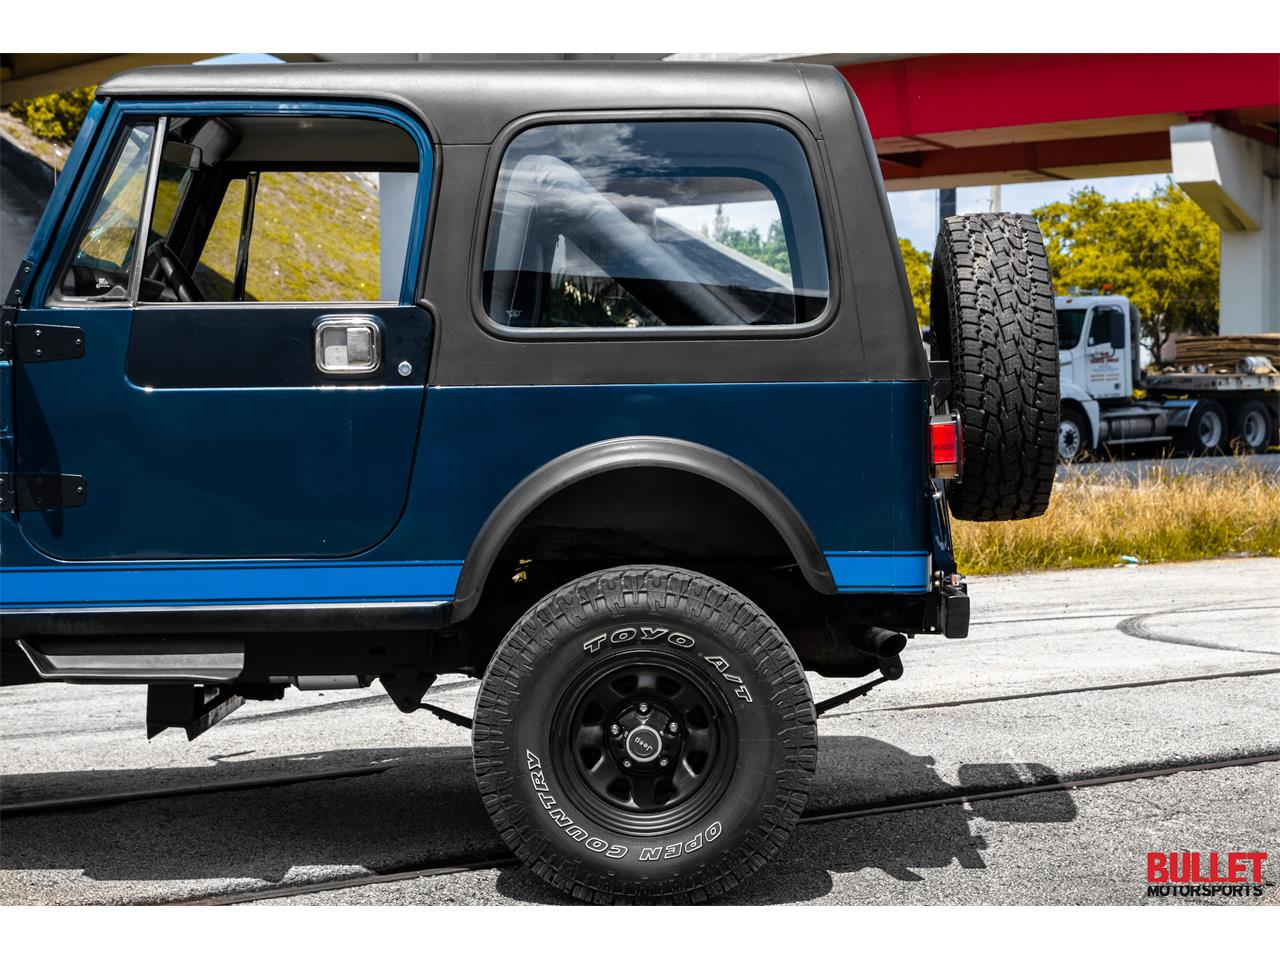 Large Picture of '83 Jeep CJ7 - $17,000.00 Offered by Bullet Motorsports Inc - PSWH